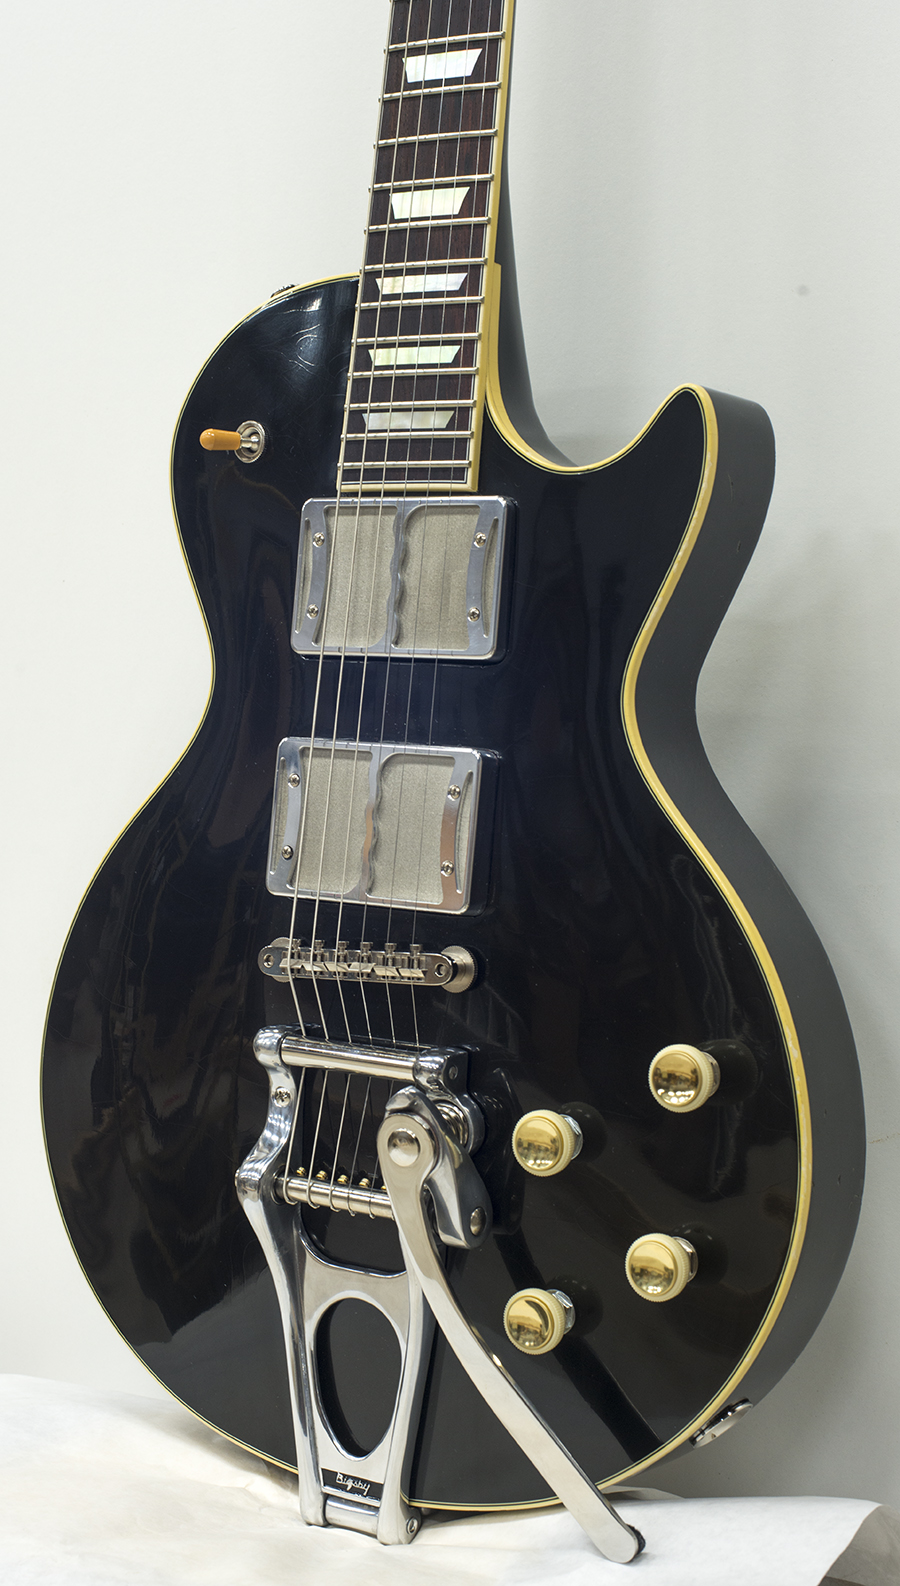 Ronin PalusMourn finished in Black with a Bigsby® Vibrolo